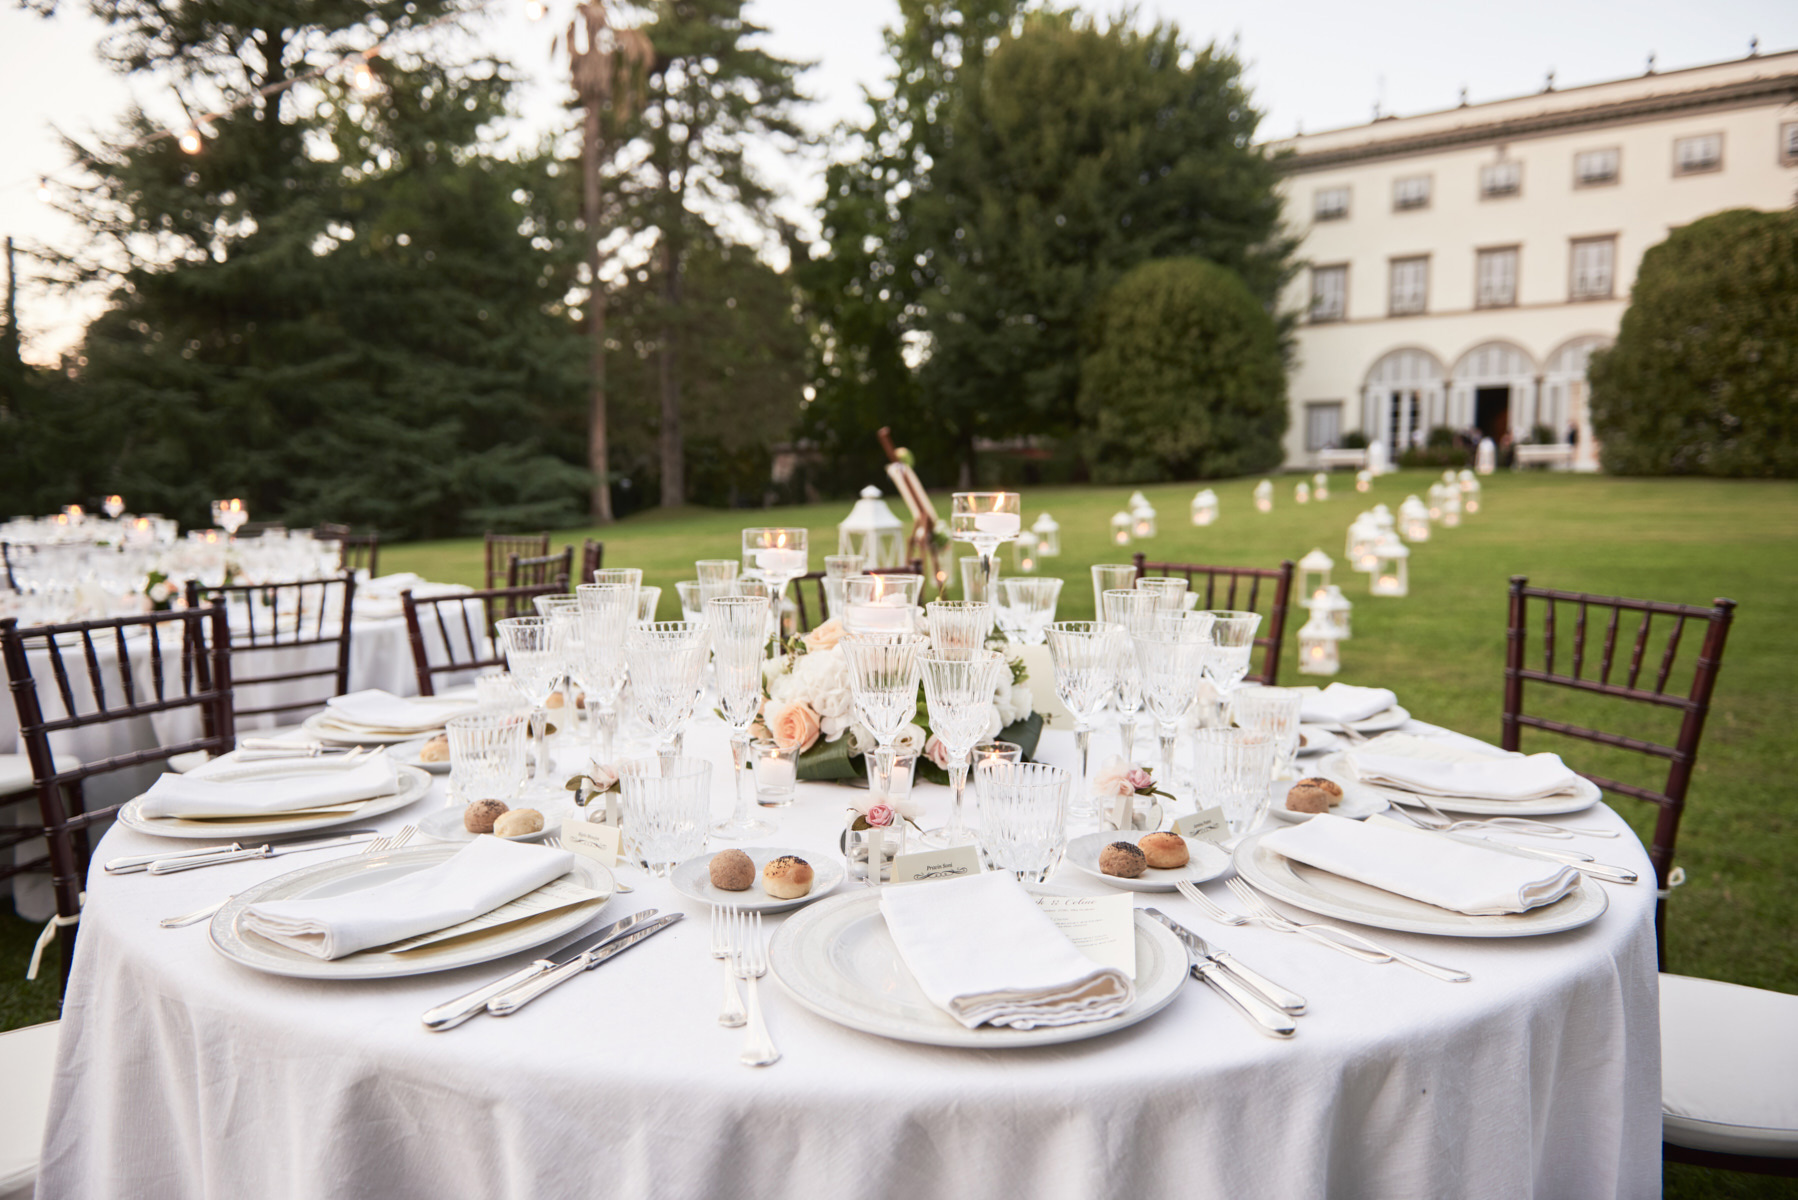 040-elegant-wedding-party-tuscany-villa-grabau